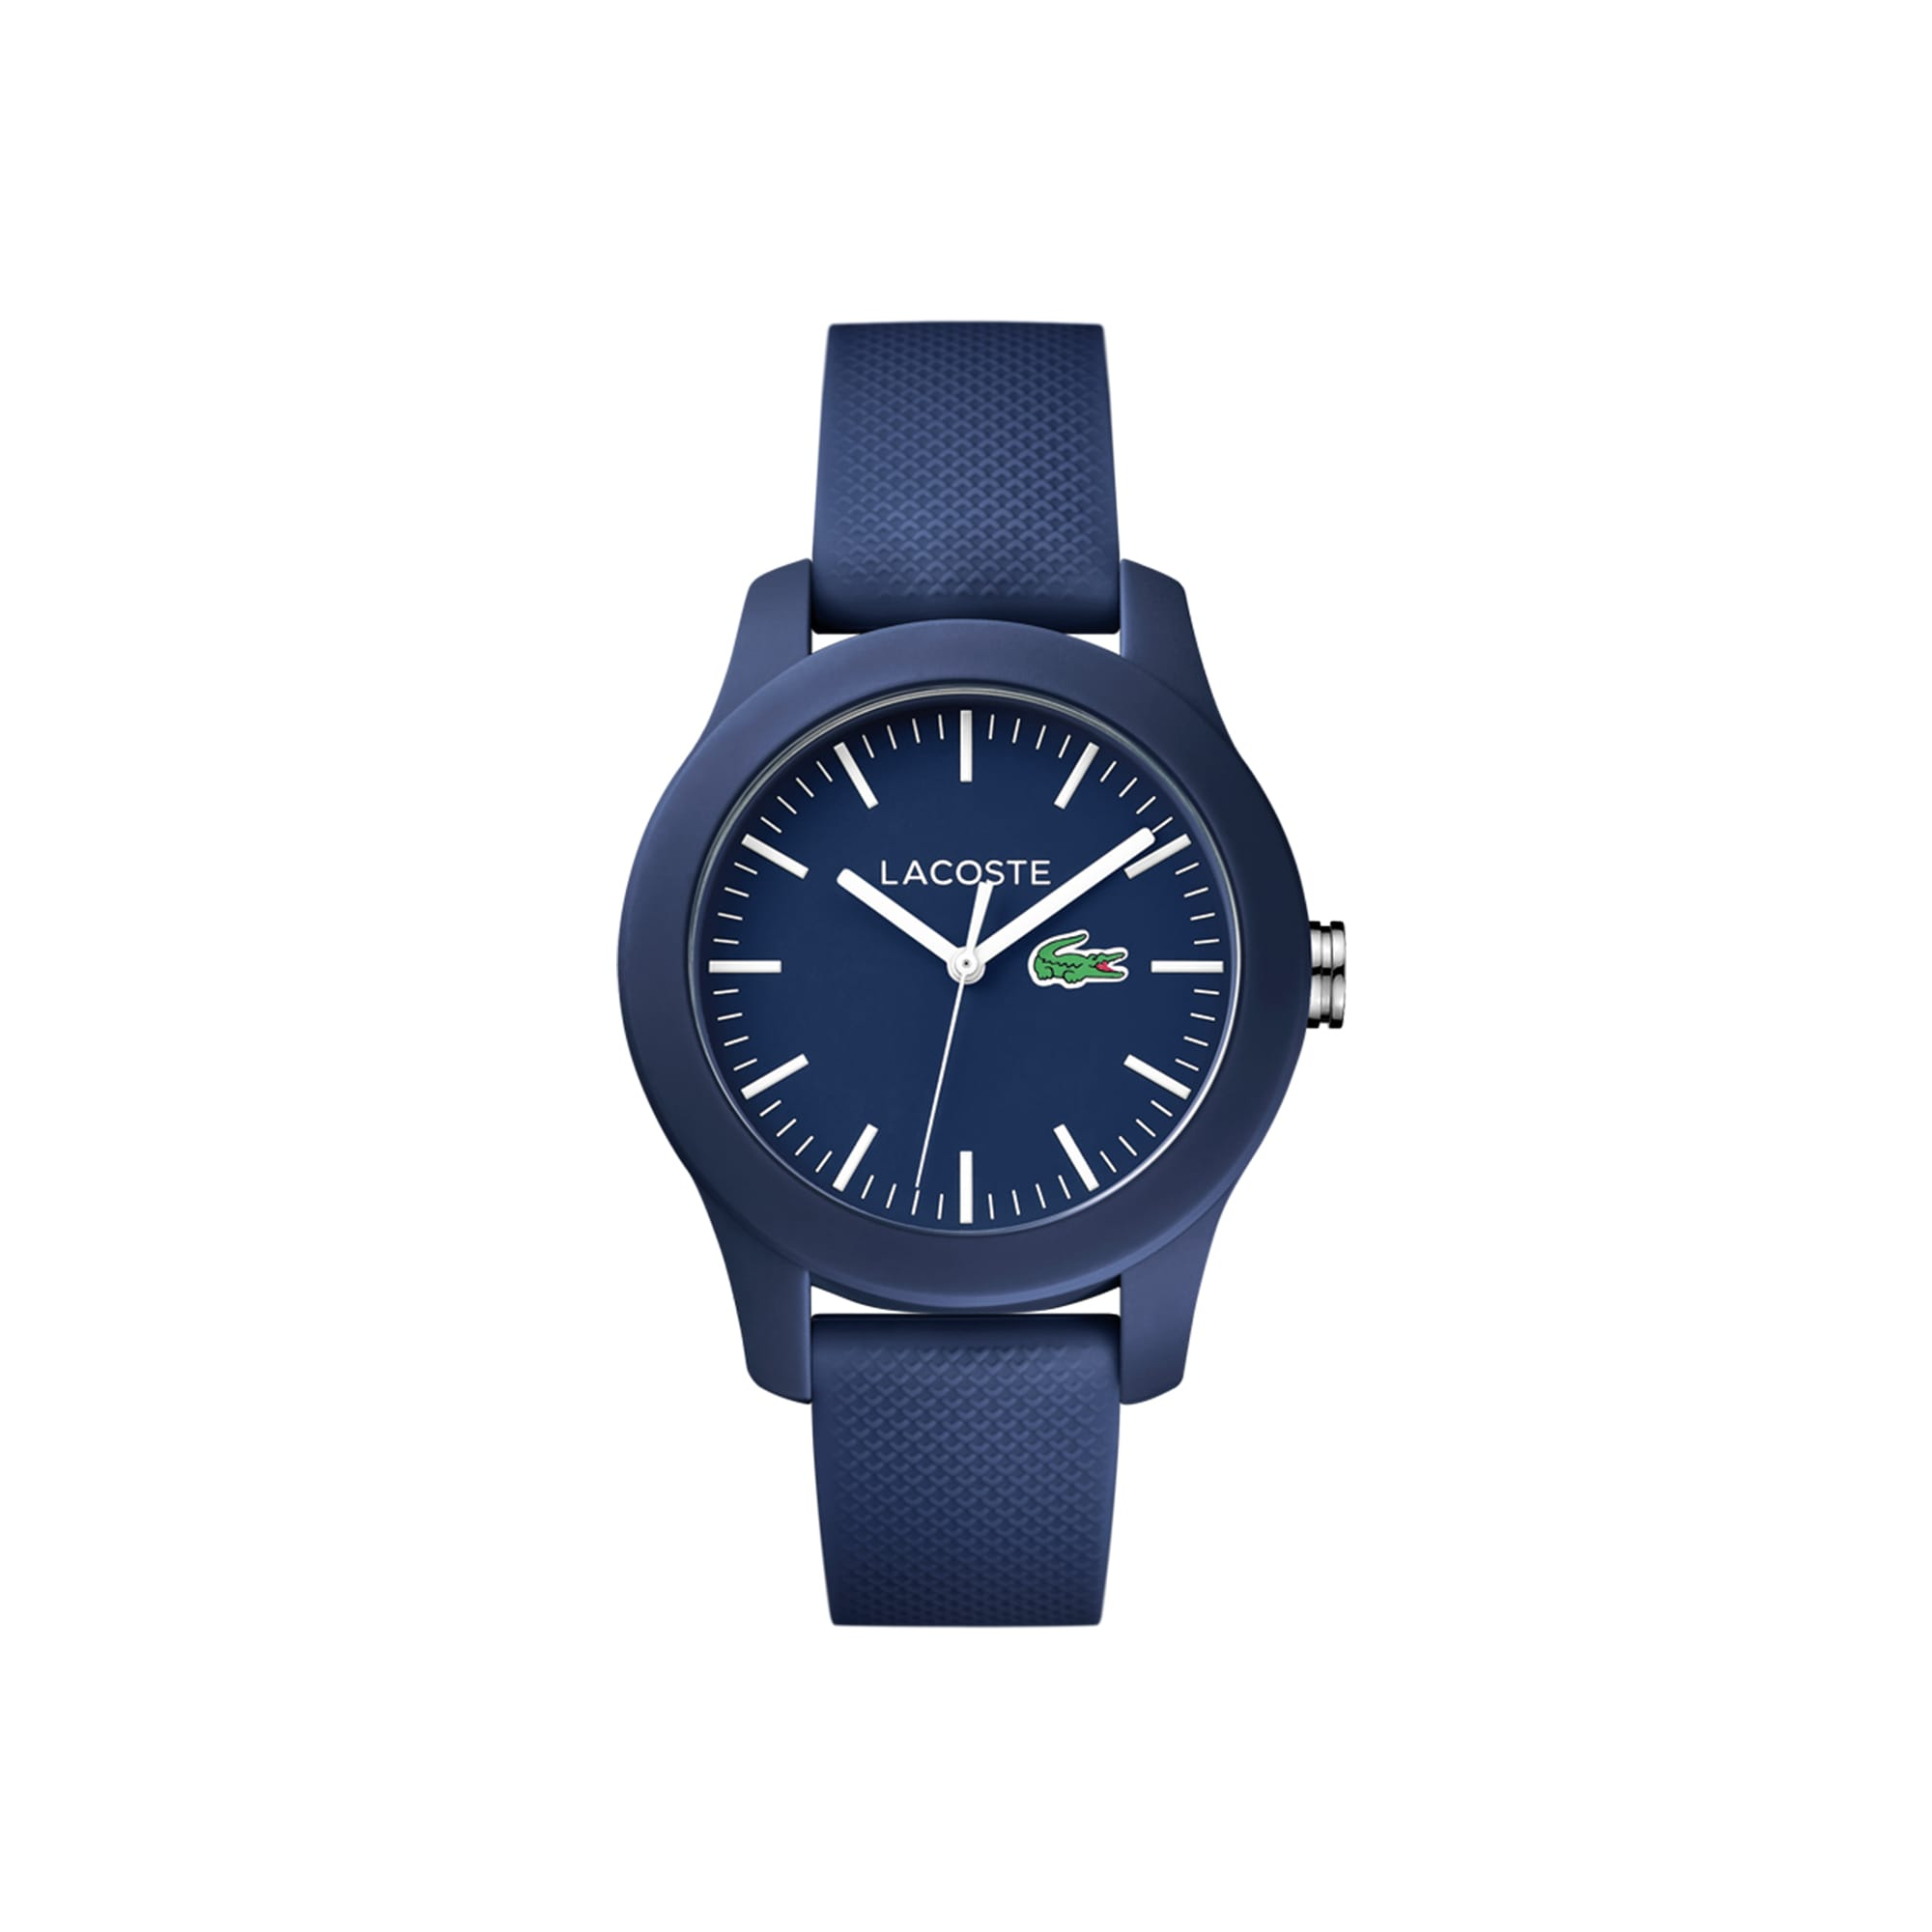 Women's Lacoste 12.12 Blue Rubber Strap